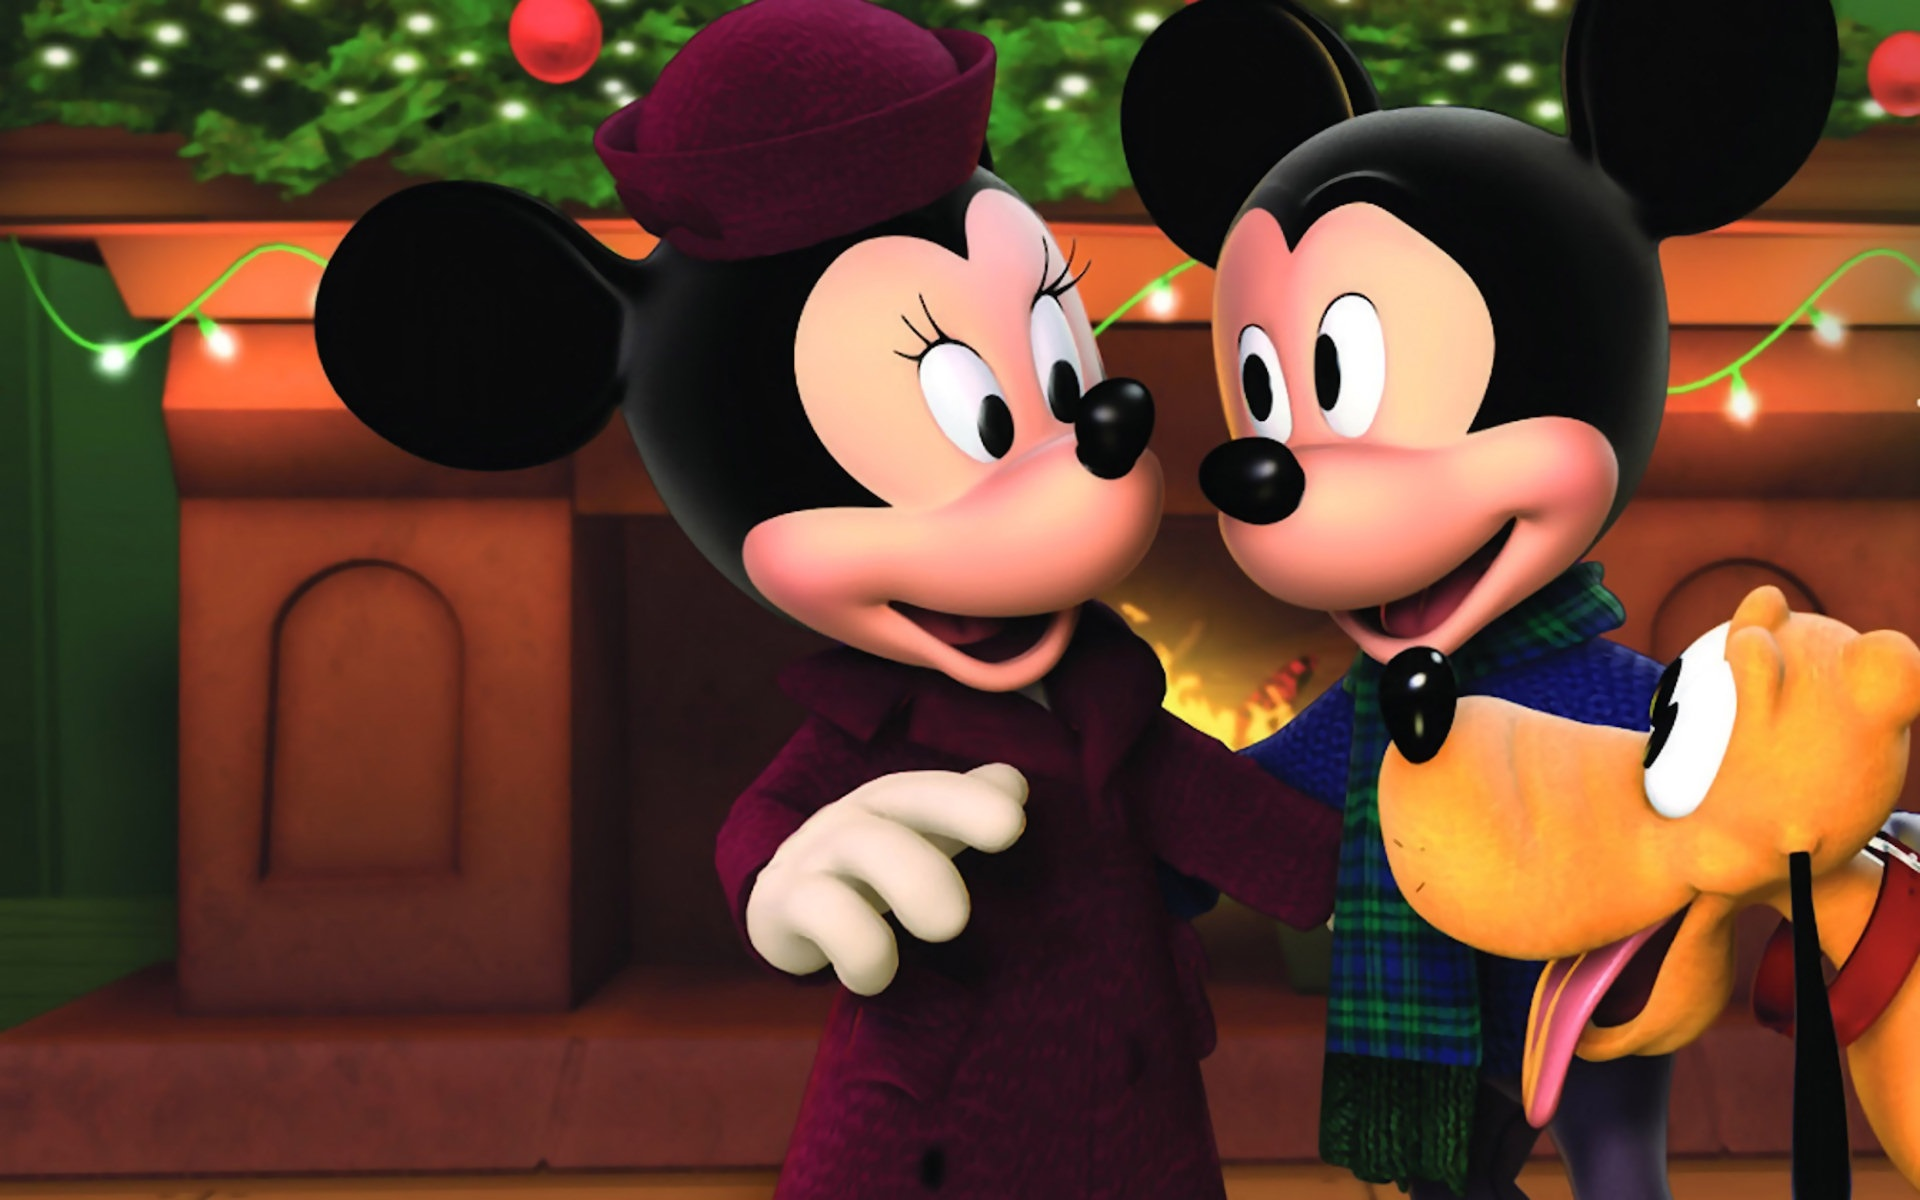 Mickey Mouse Wallpapers, Pictures, Images